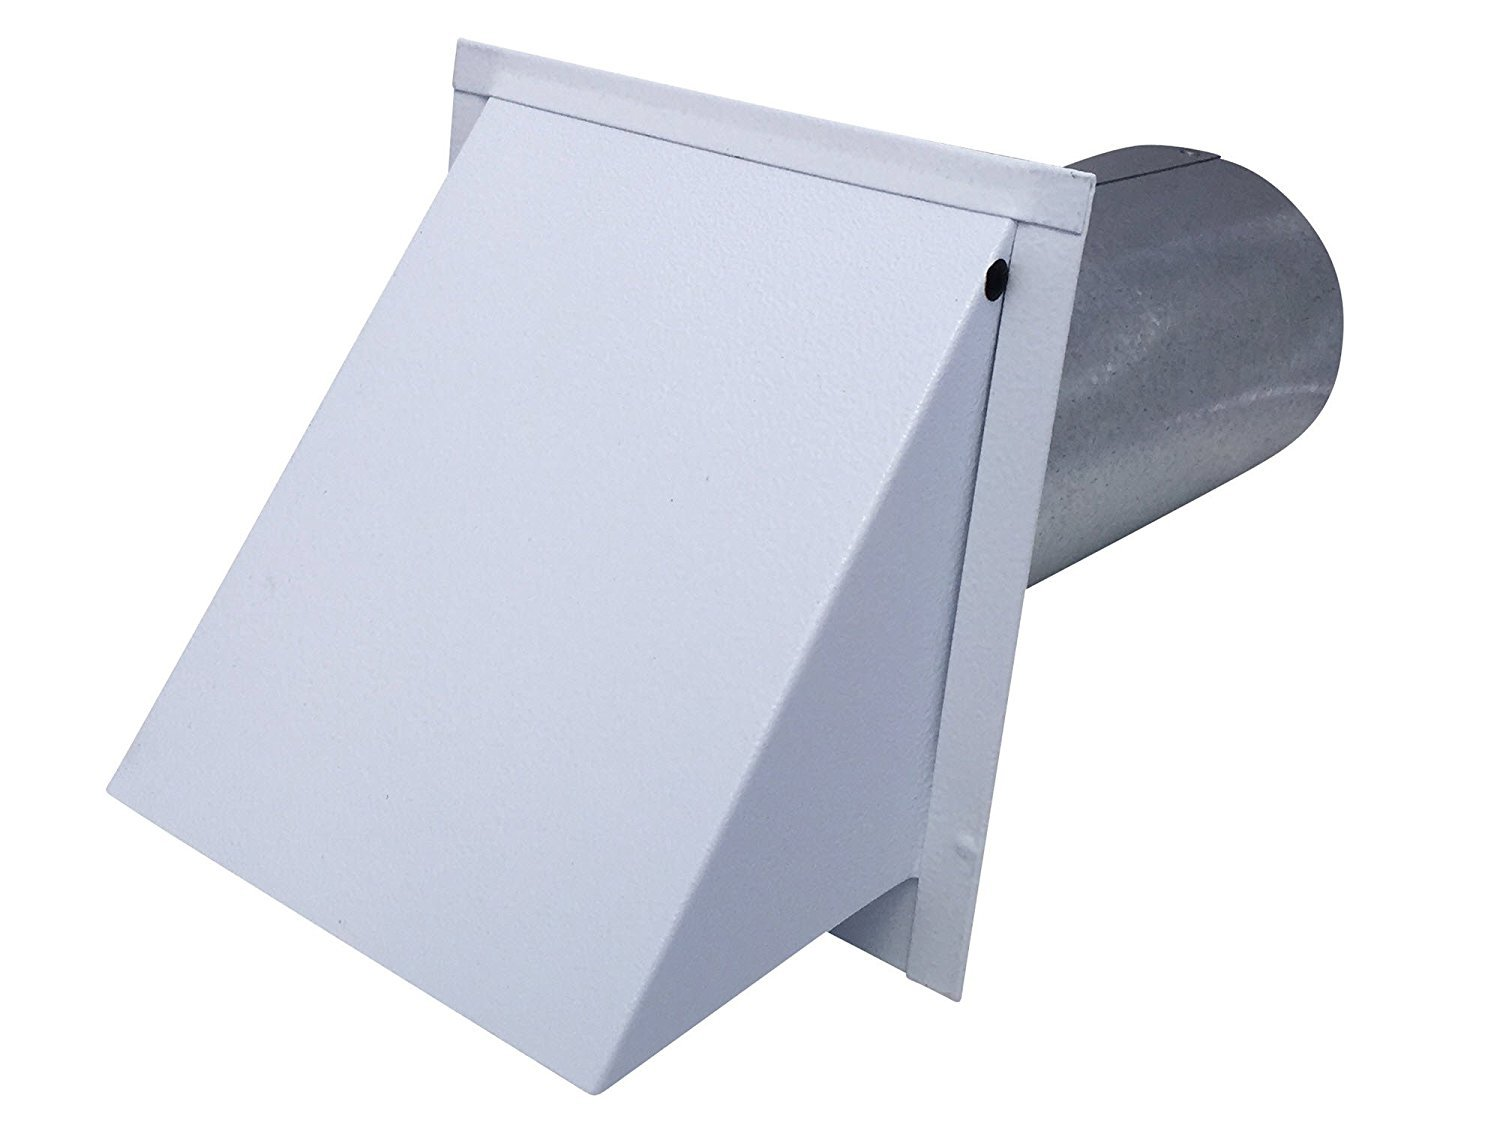 5 Inch Wall Vent Painted White Damper Only (5 Inch diameter) - Vent Works